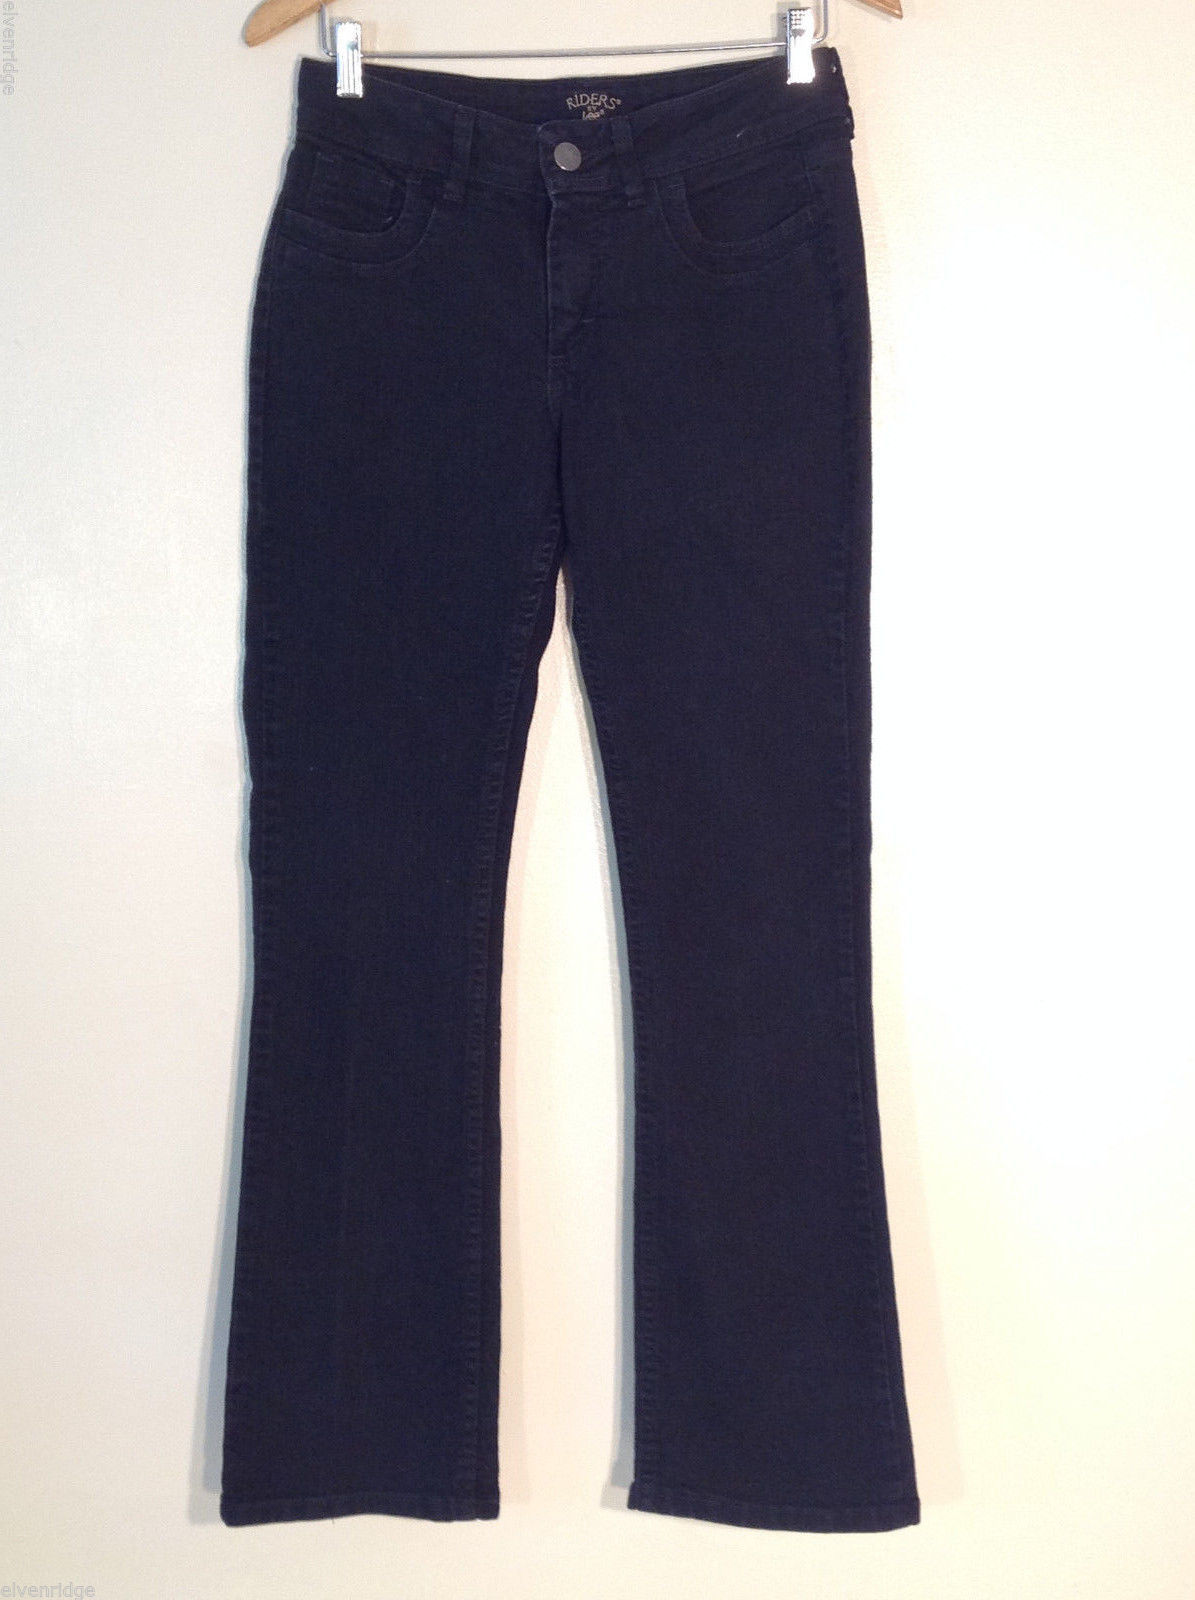 "Lee Riders Women's Size 6 M Denim Jeans Black Stretchy Boot Cut 32"" Tall Inseam"